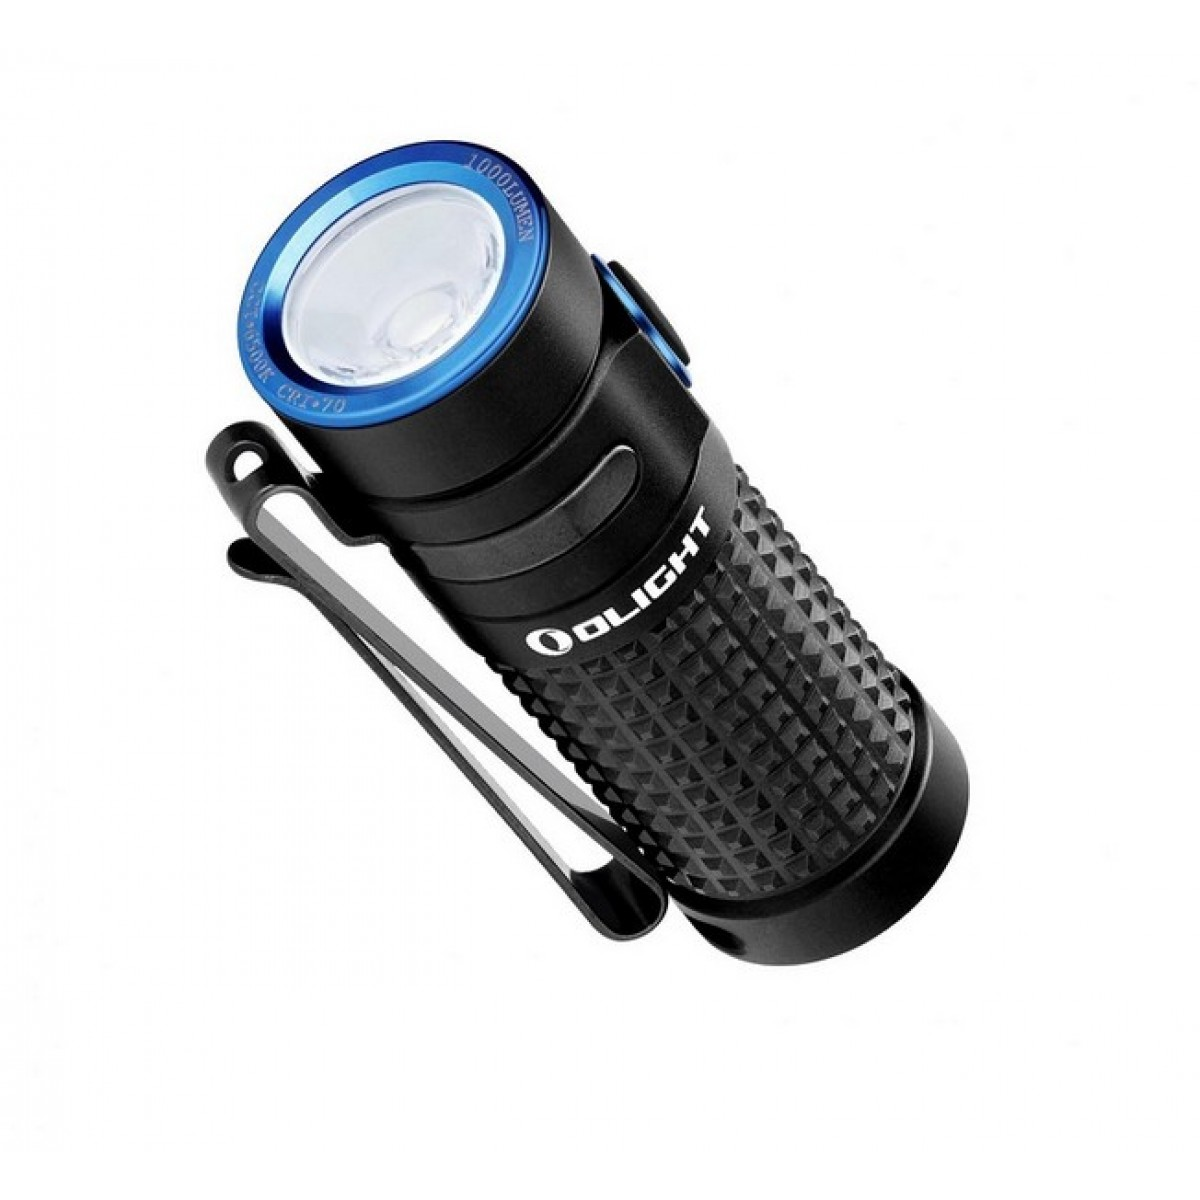 Olight S1R II Baton Rechargeable CREE XM-L2 LED 1000L Flashlight